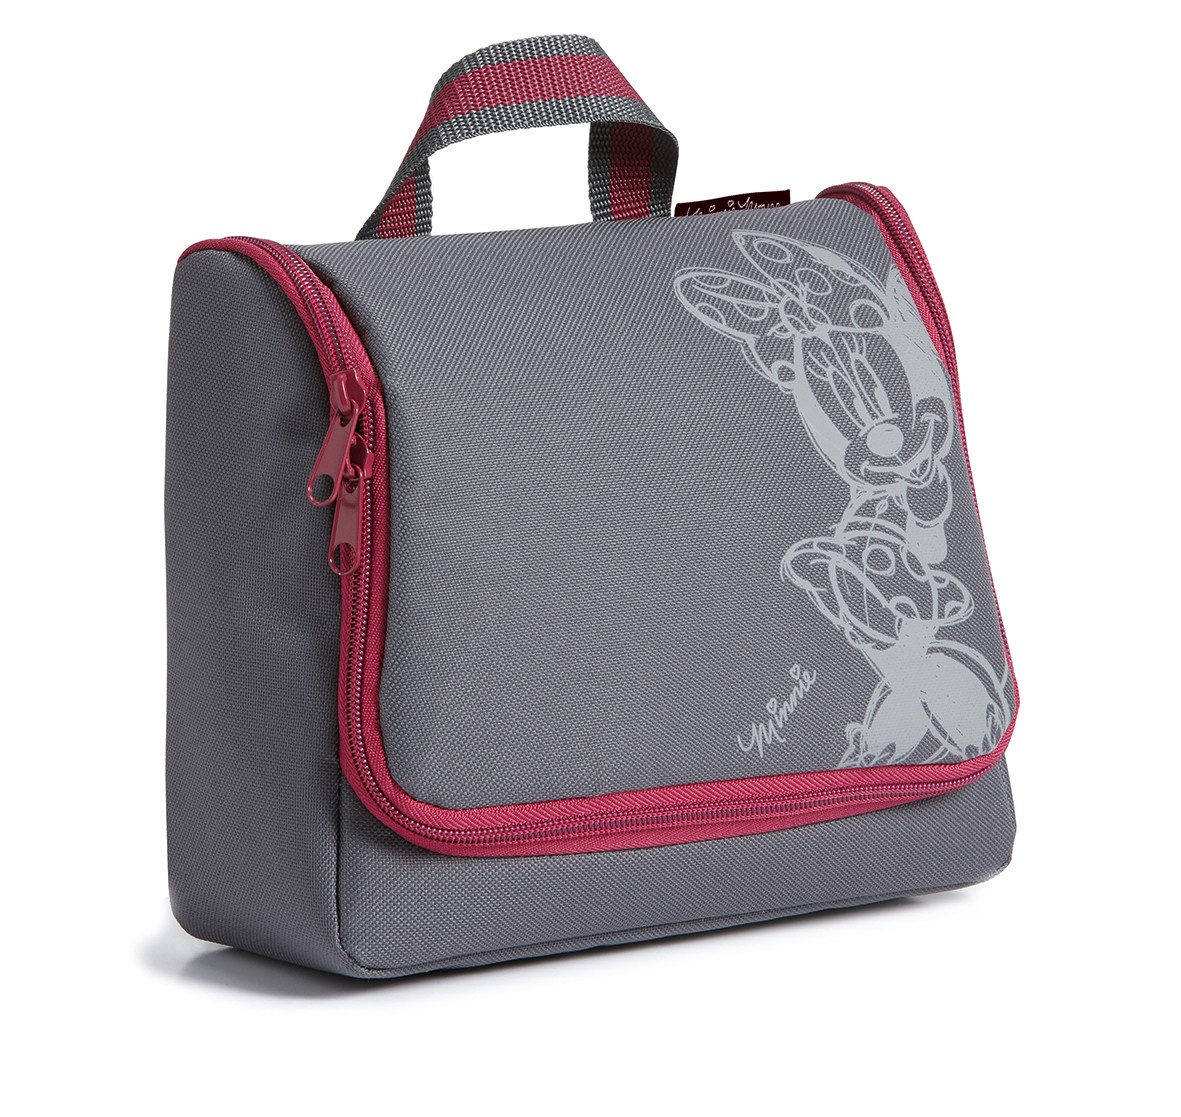 minnie trousse de toilette de voyage grise et rose 23x20x10cm. Black Bedroom Furniture Sets. Home Design Ideas